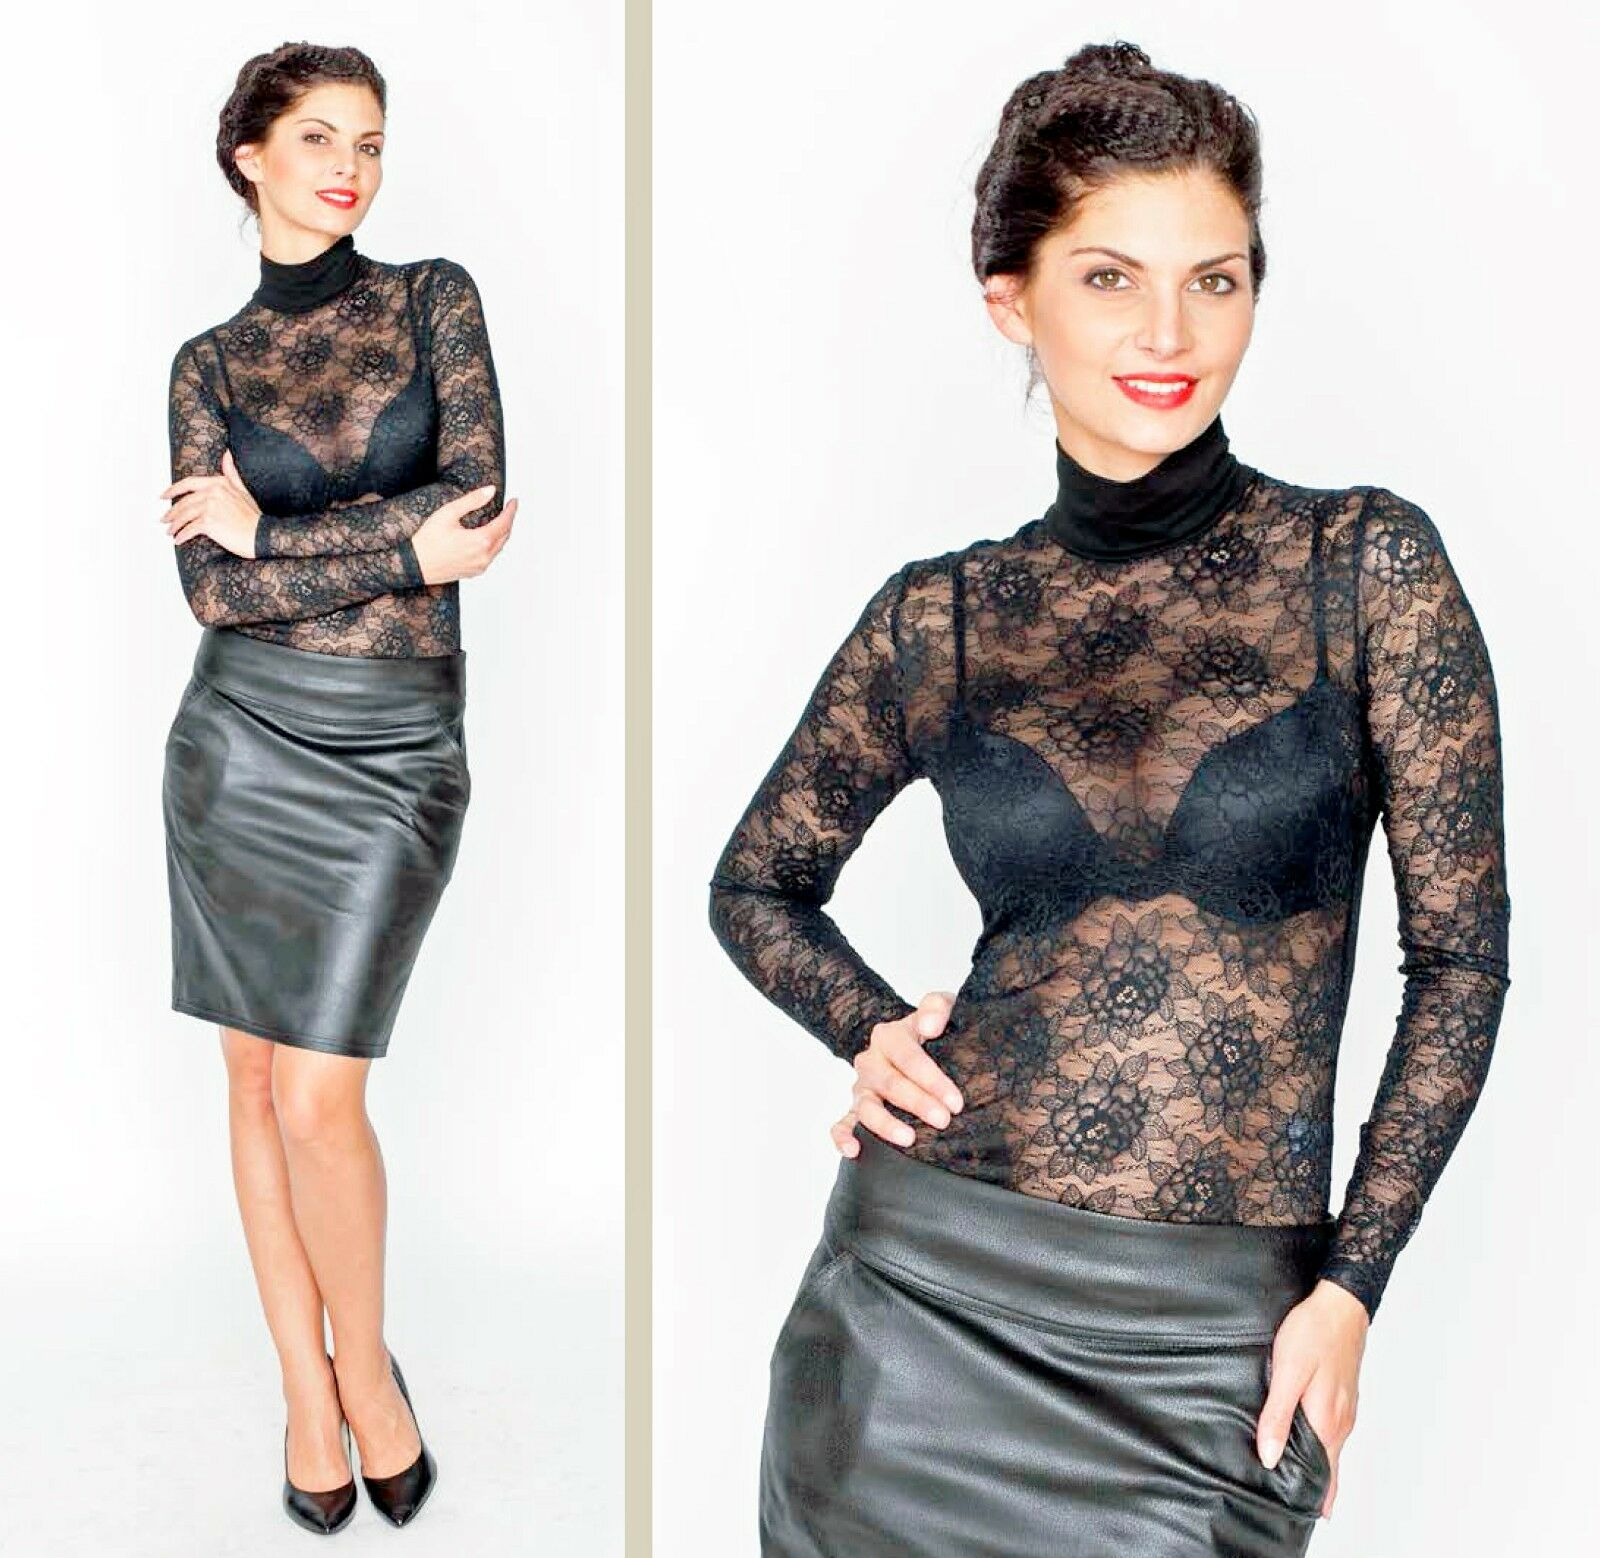 Lace Party Blouse Career Mock Neck Sheer Long Sleeves European Jumper S M L XL